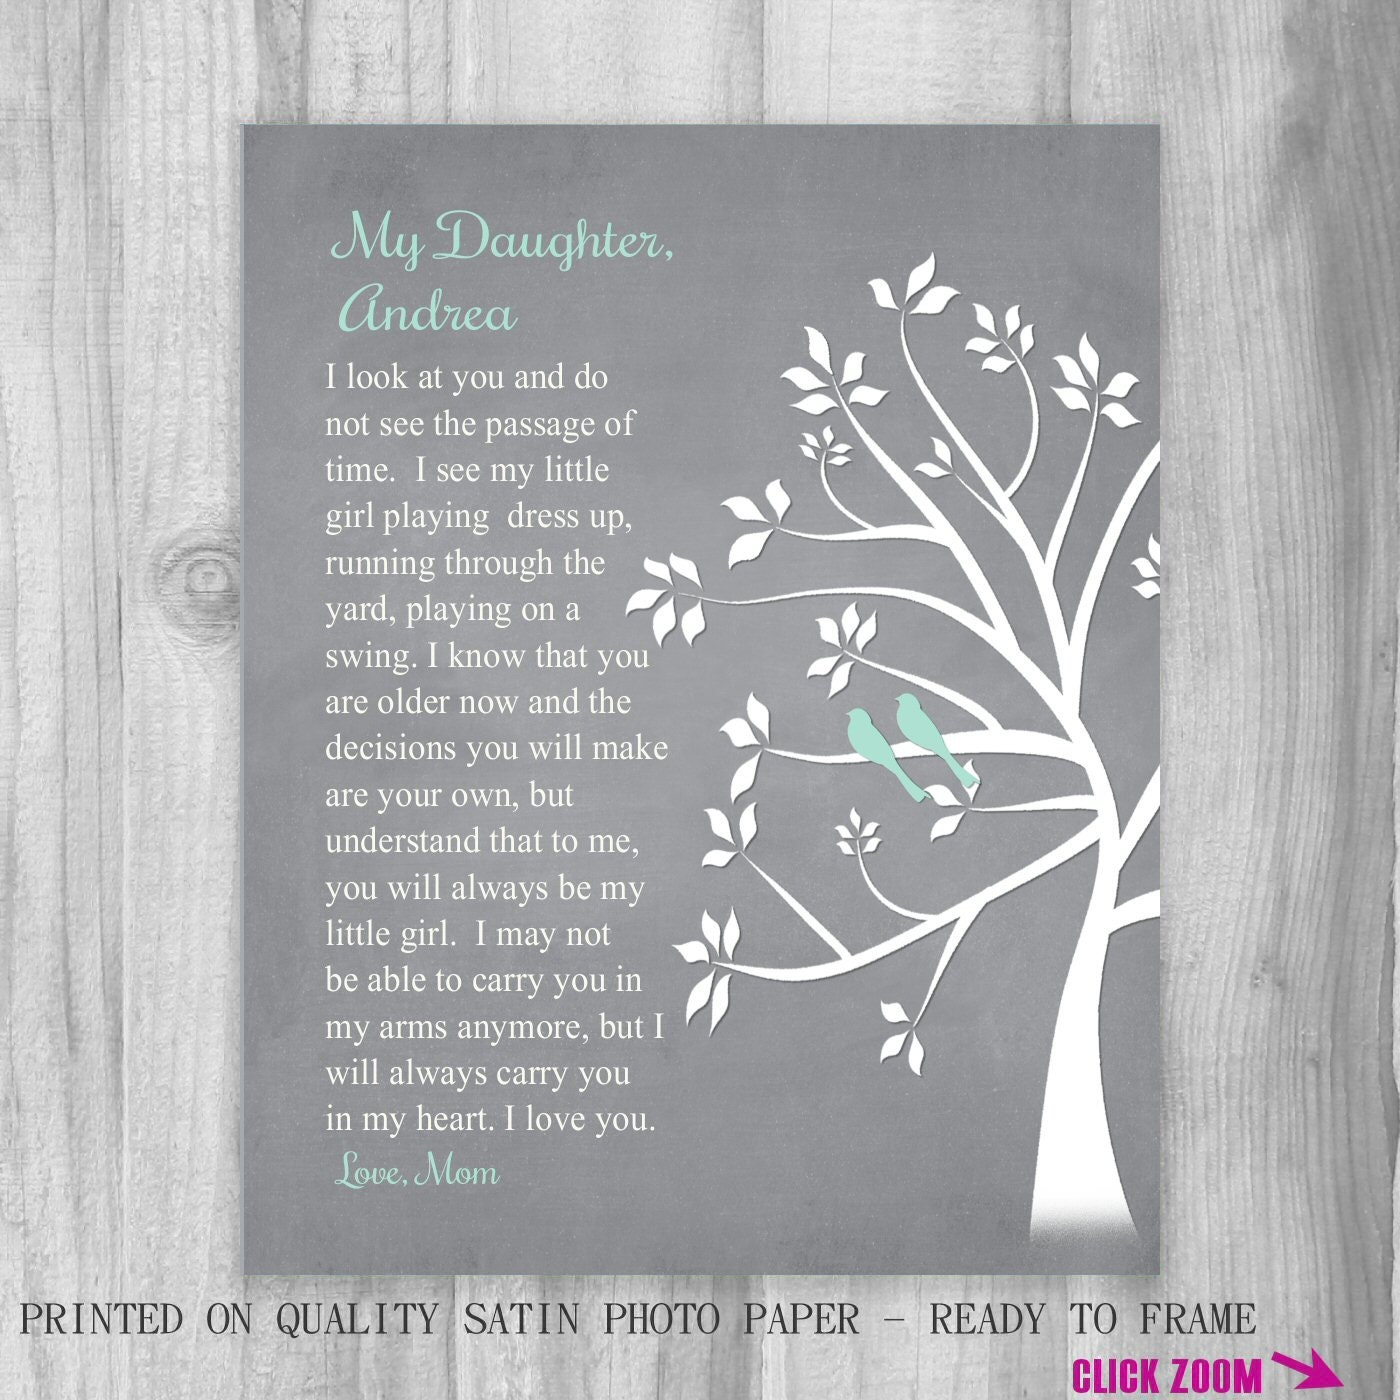 Ideas Gifts From Mother To Daughter On Wedding Day wedding day gift ...